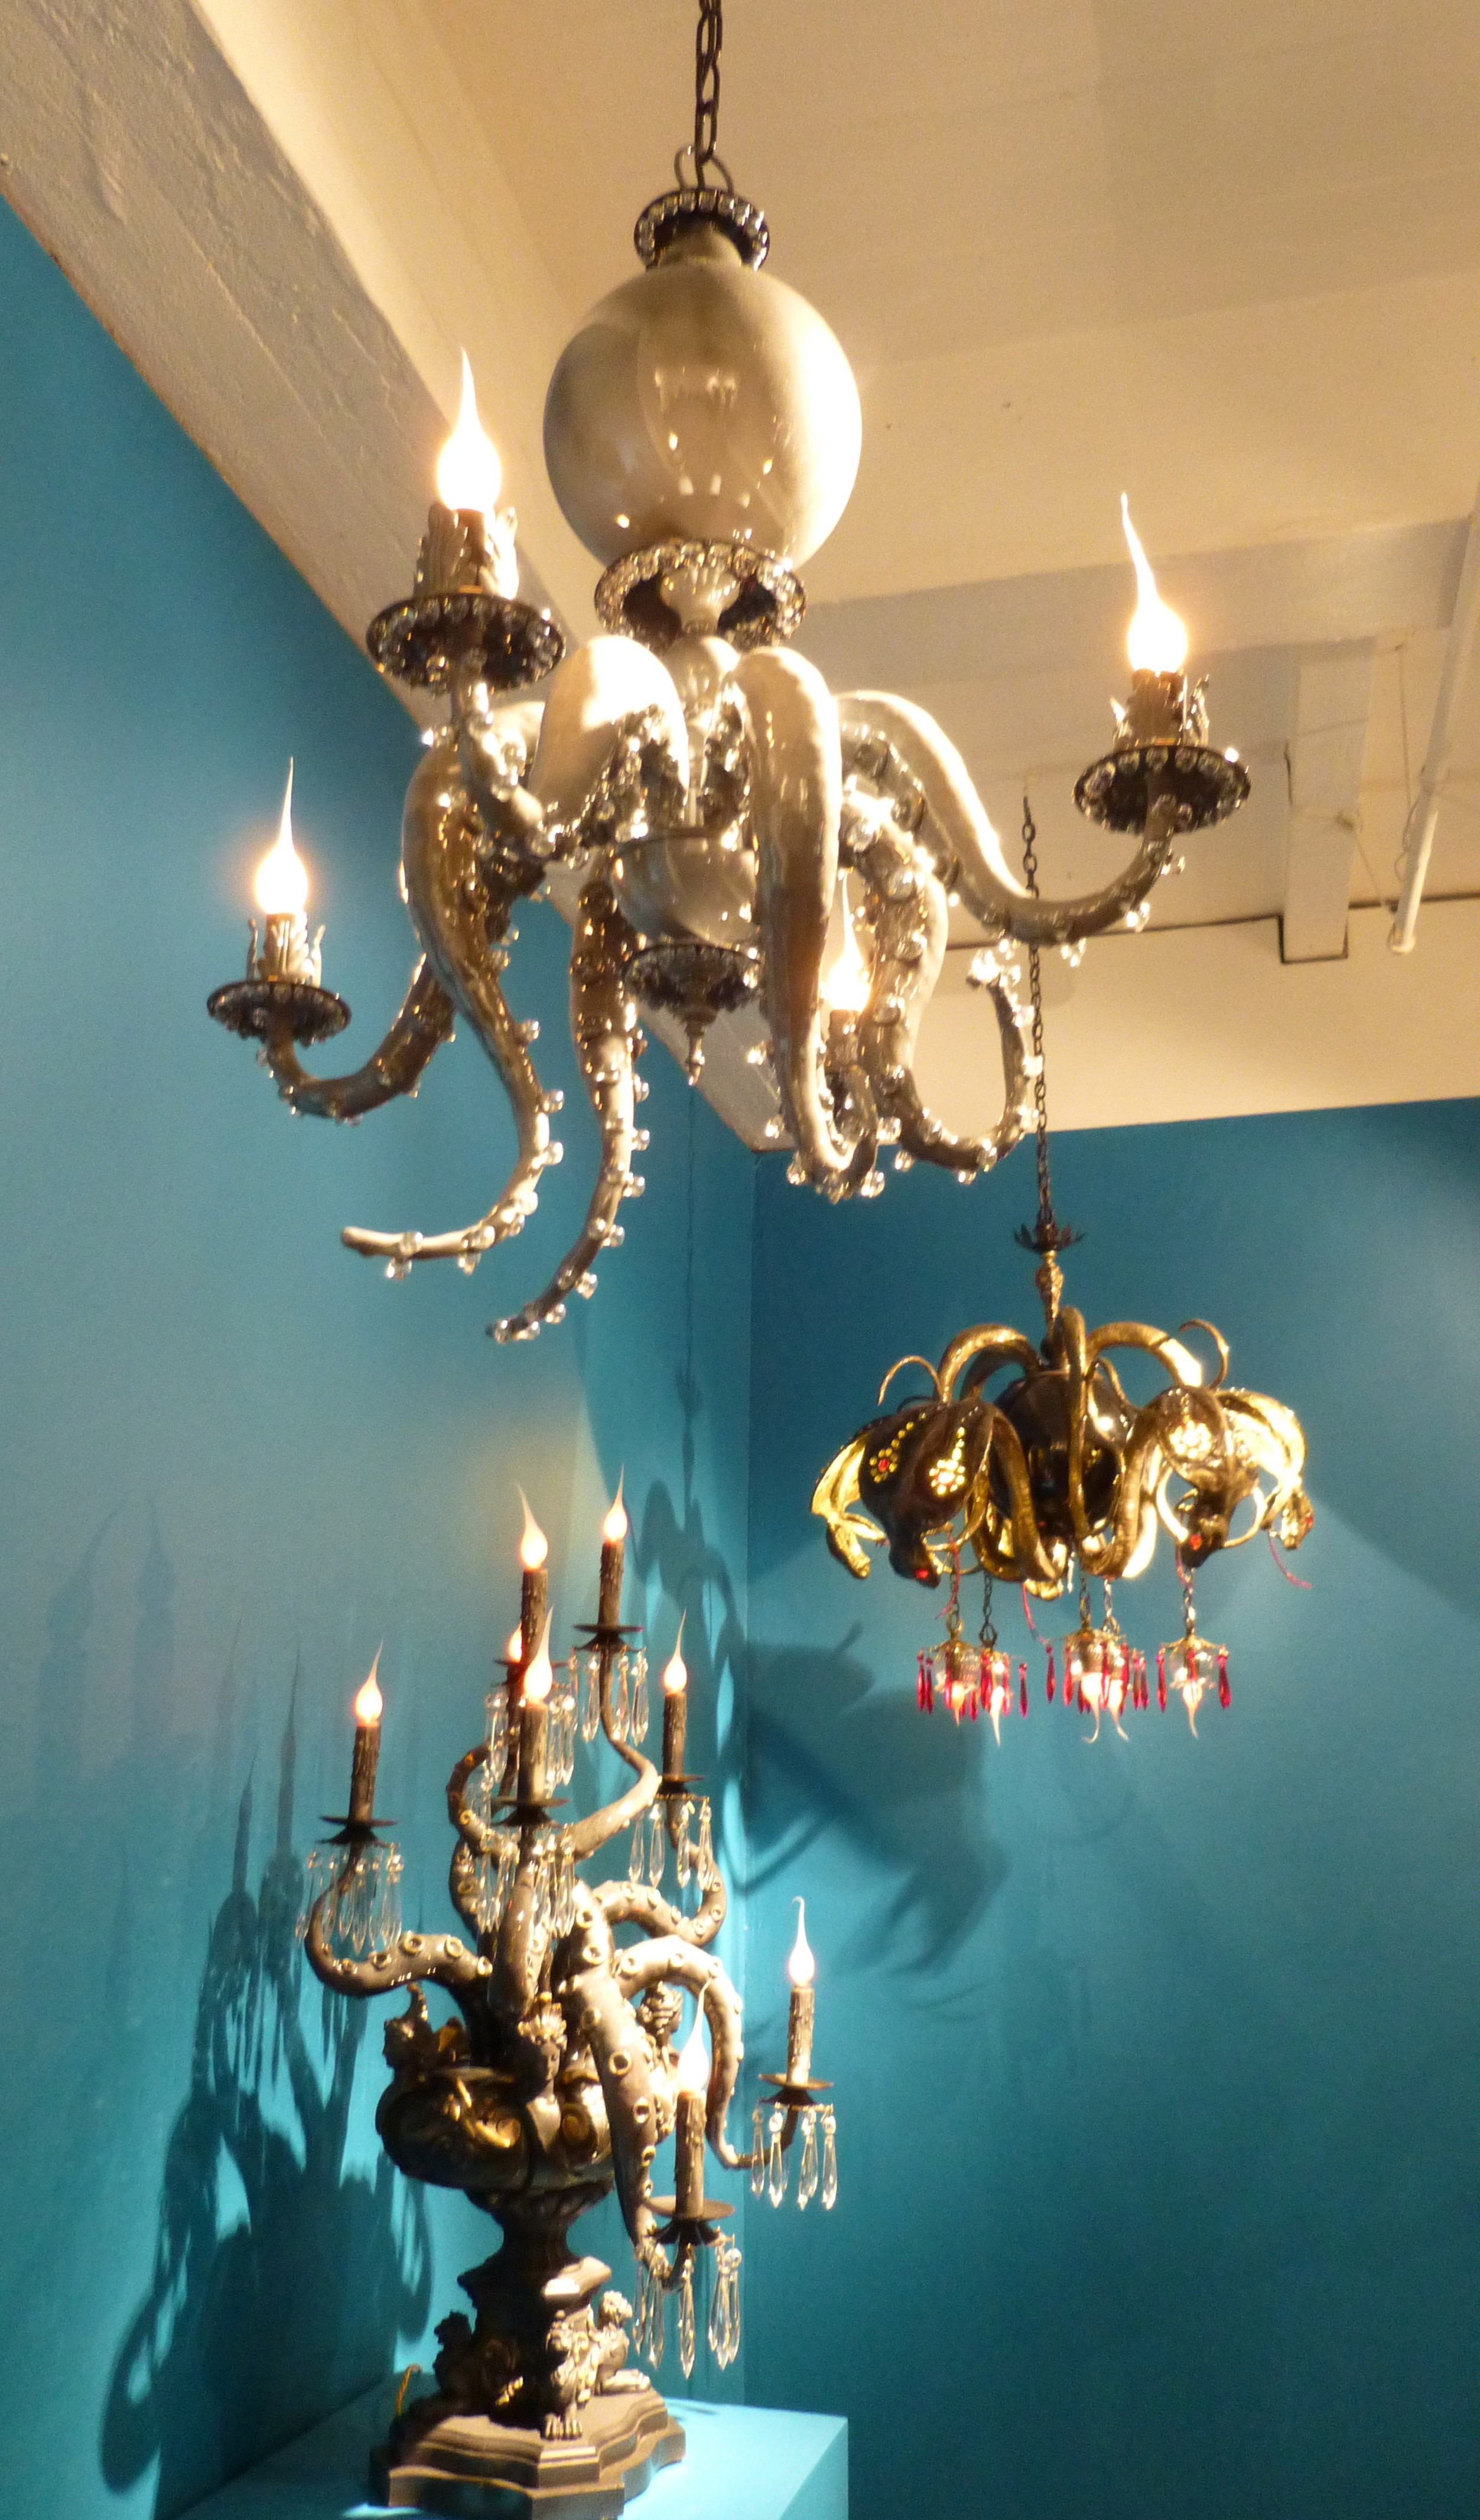 Adam wallacavage presents magic mountain the worley gig octopus chandeliers arubaitofo Image collections